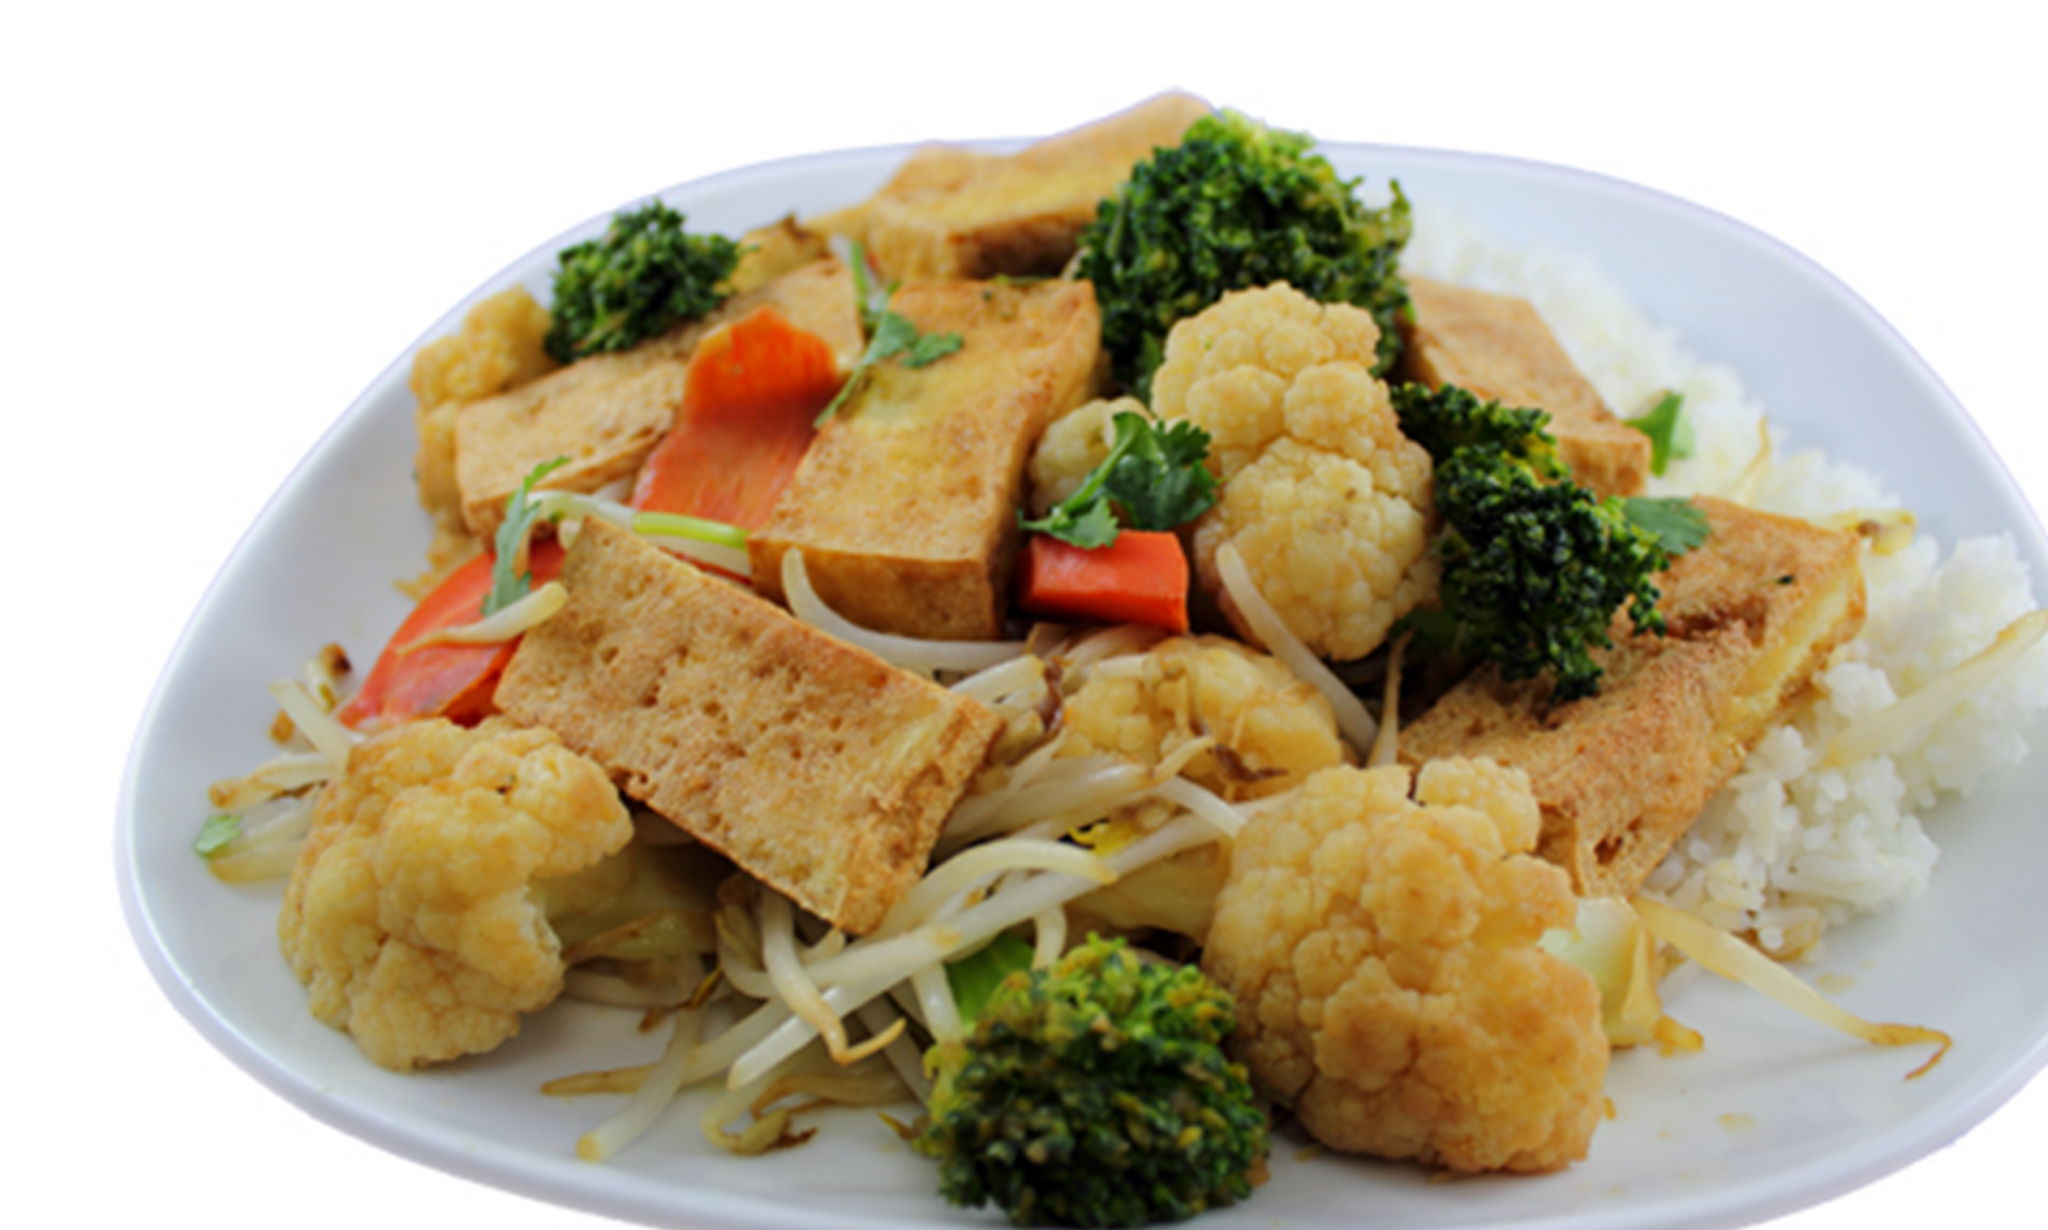 Cơm rau xào đậu hũ – Seasonal vegetable and crispy  tofu stir-fry